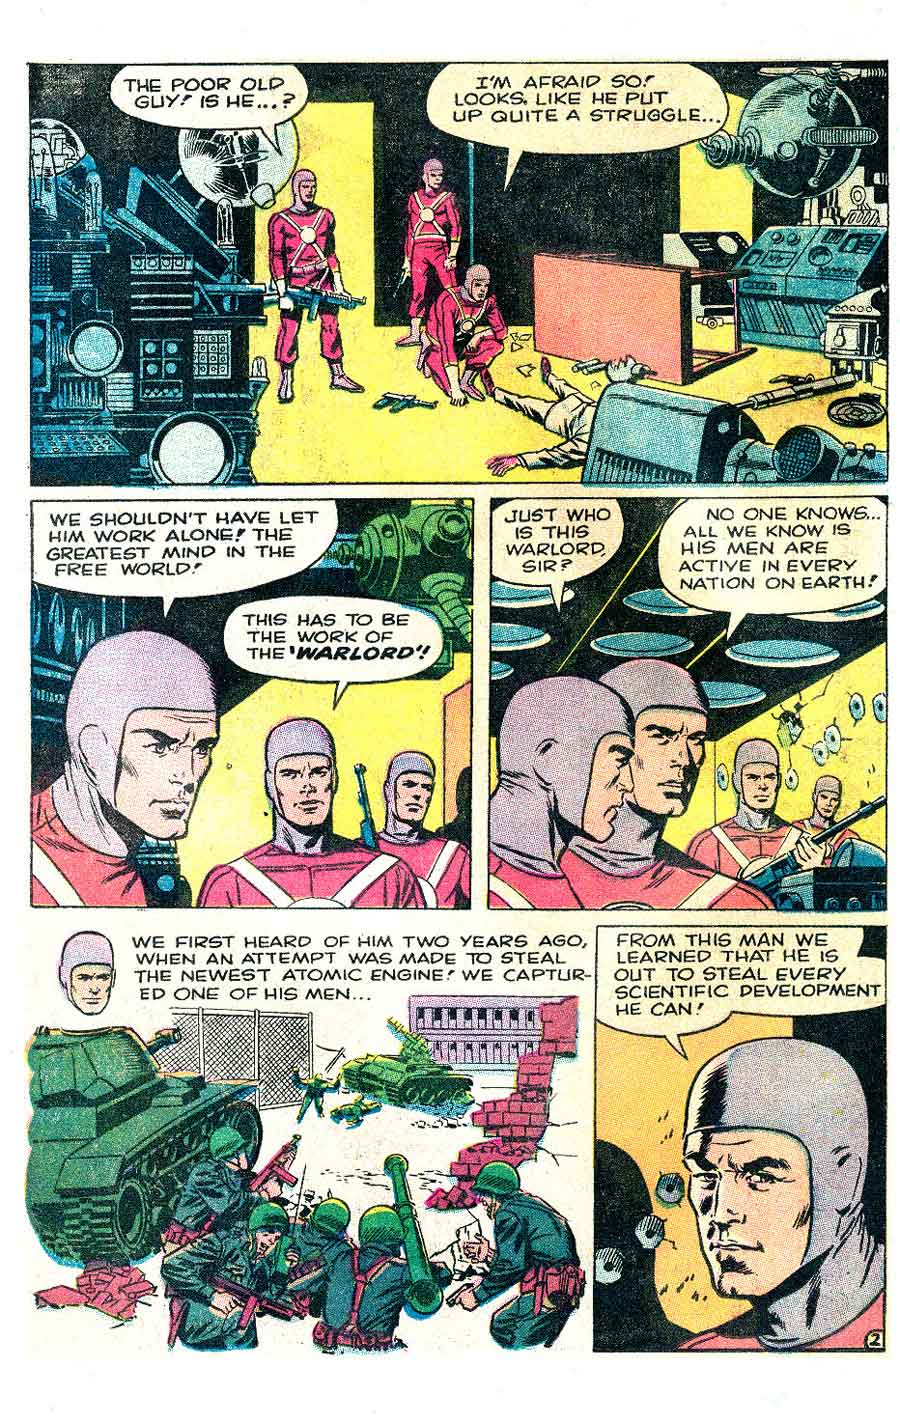 Thunder Agents v1 #17 tower silver age 1960s comic book page art by Wally Wood, Steve Ditko